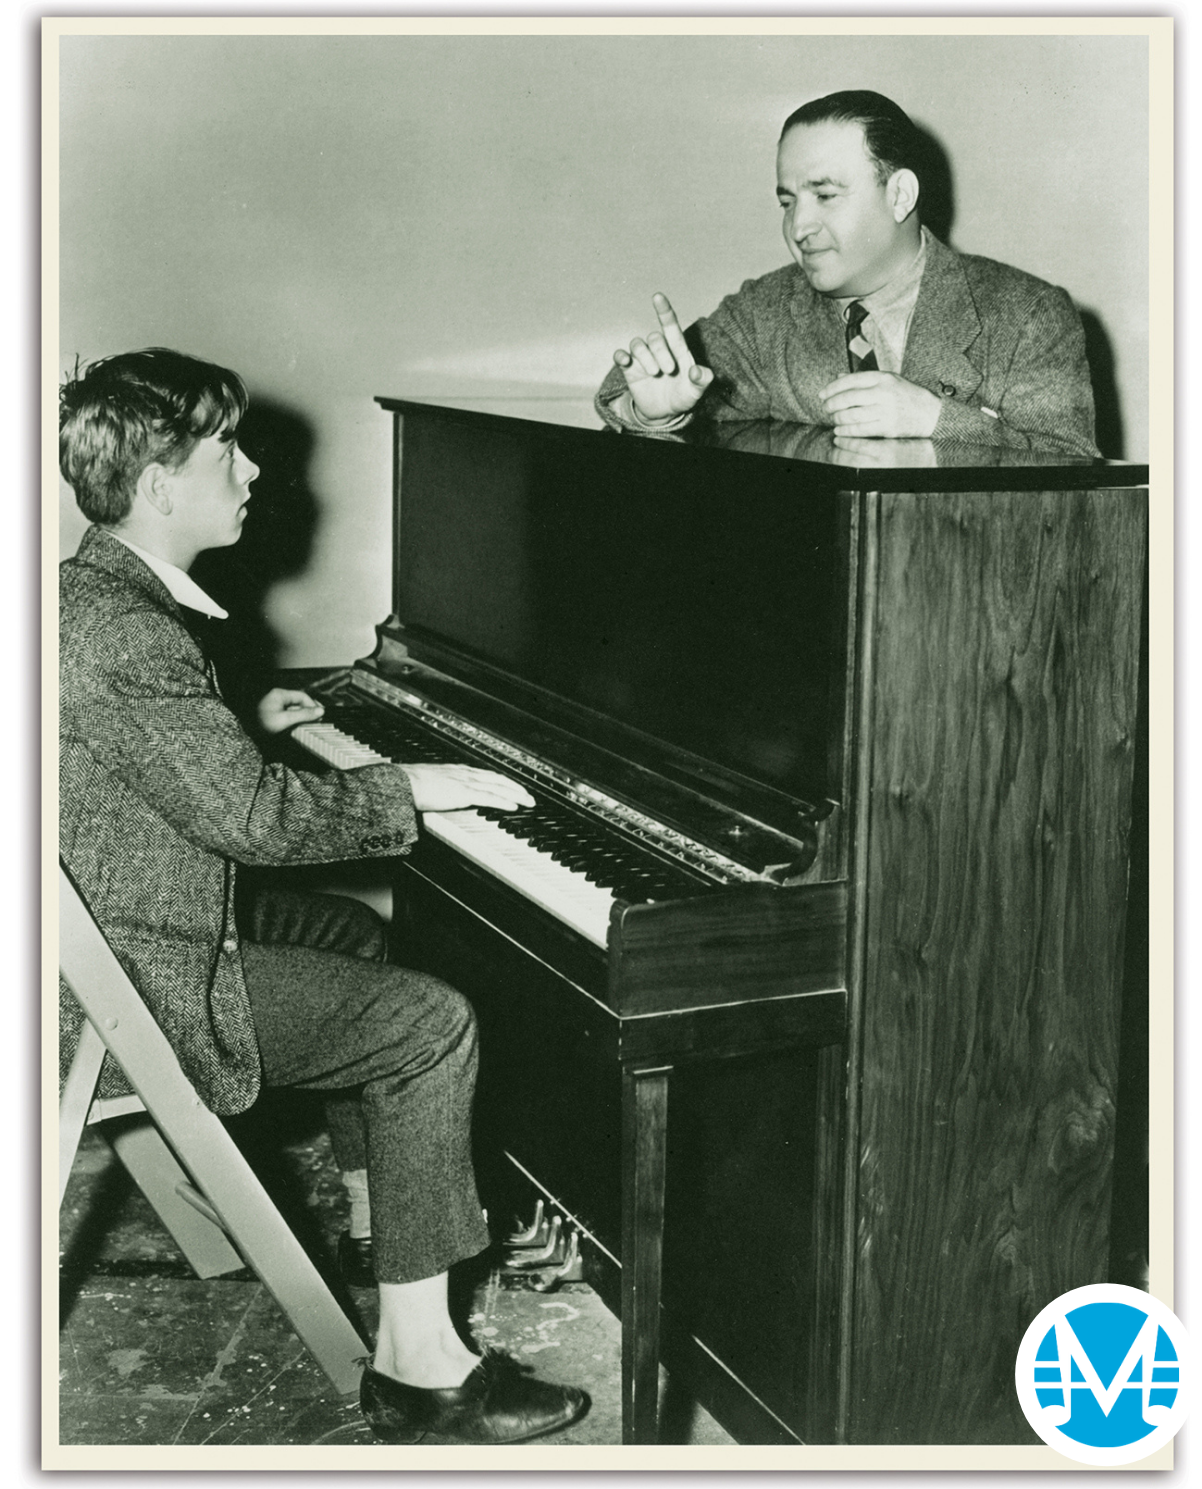 Gus Kahn instructs a young Mickey Rooney to play piano.